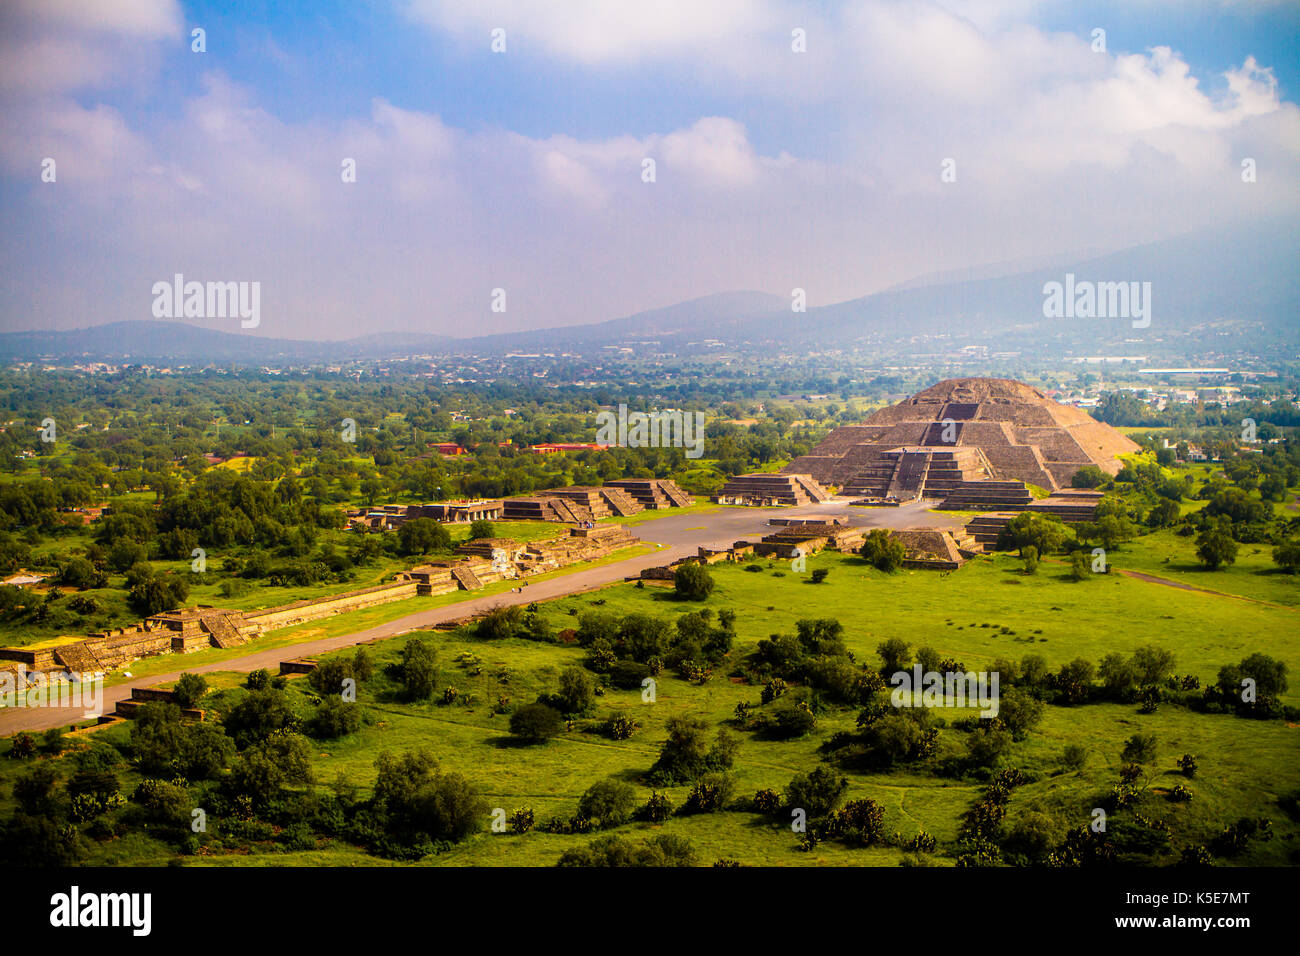 Avenue of the Dead and Pyramid of the Moon, Teotihuacan, Mexico - Stock Image